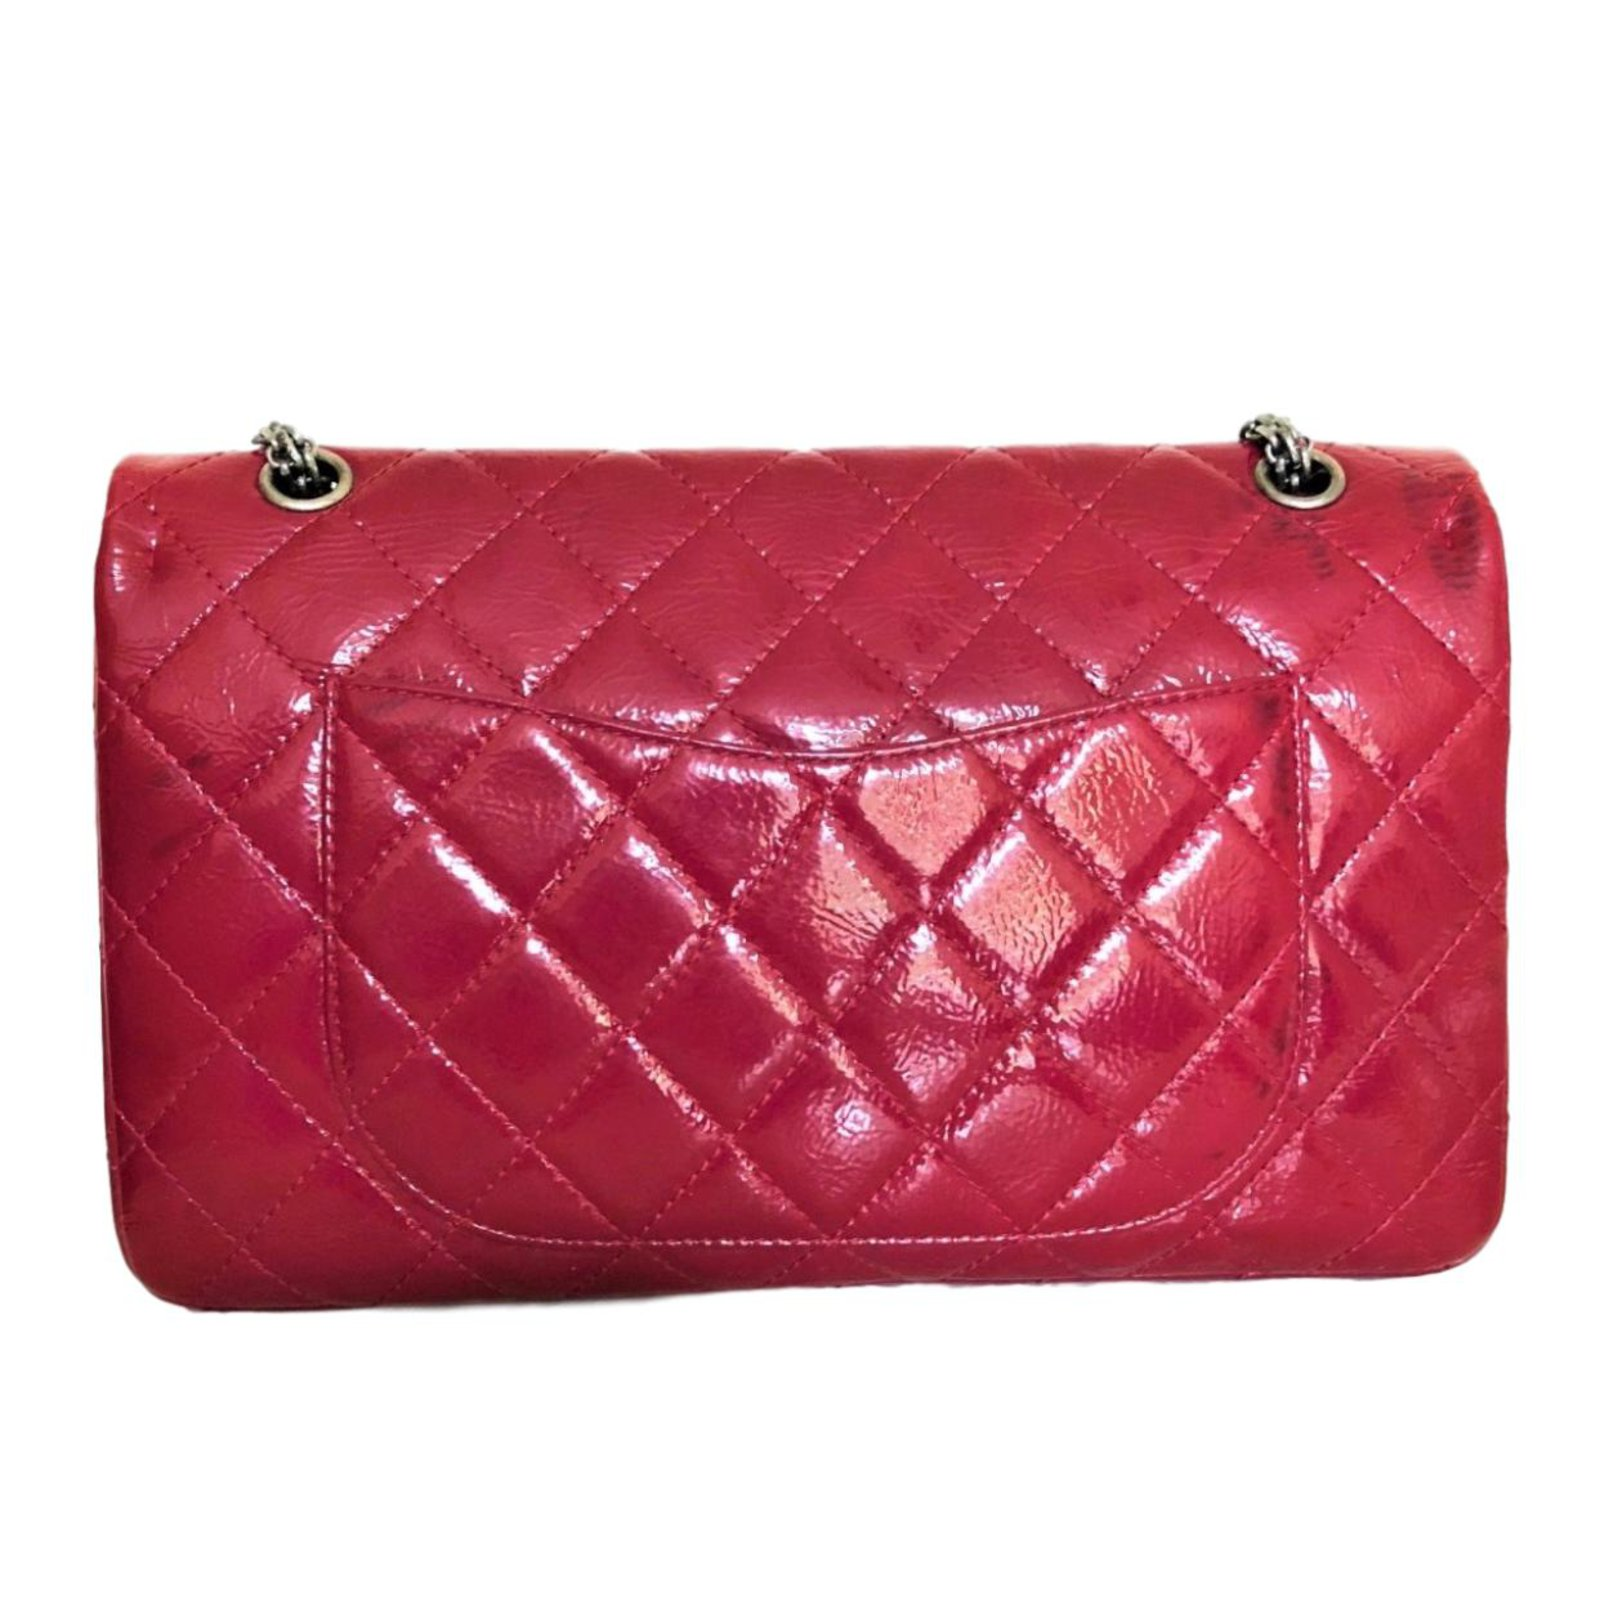 348f9b6cc473 Chanel 2.55 Handbags Patent leather Red ref.68440 - Joli Closet